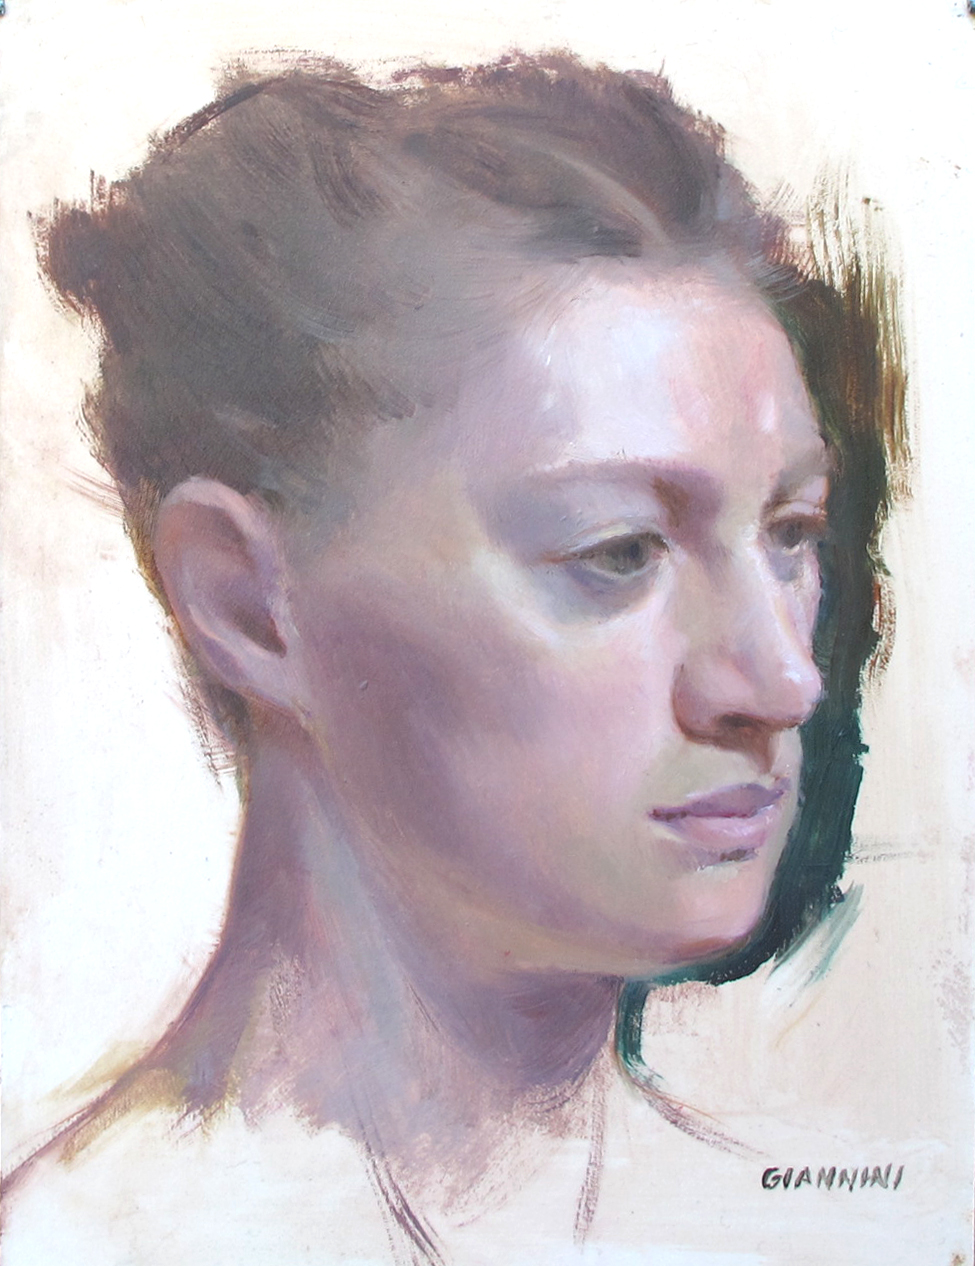 Sara, 9 by 12 in., Oil On Board